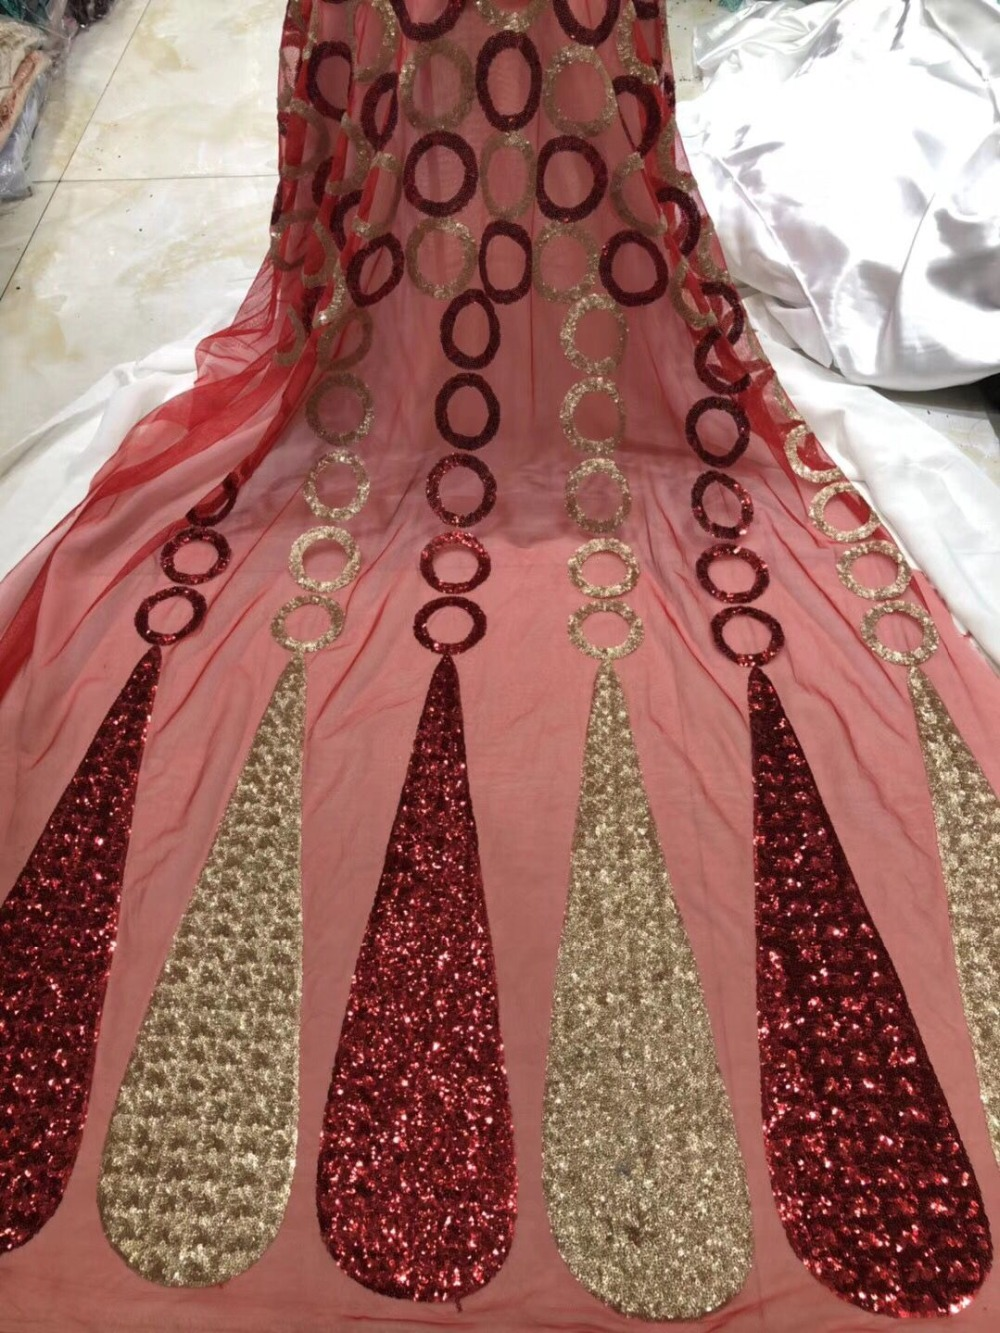 WINE African Lace Fabric 2019 High Quality Lace Sequin Fabric French Nigerian wholesale Lace Fabric Gold